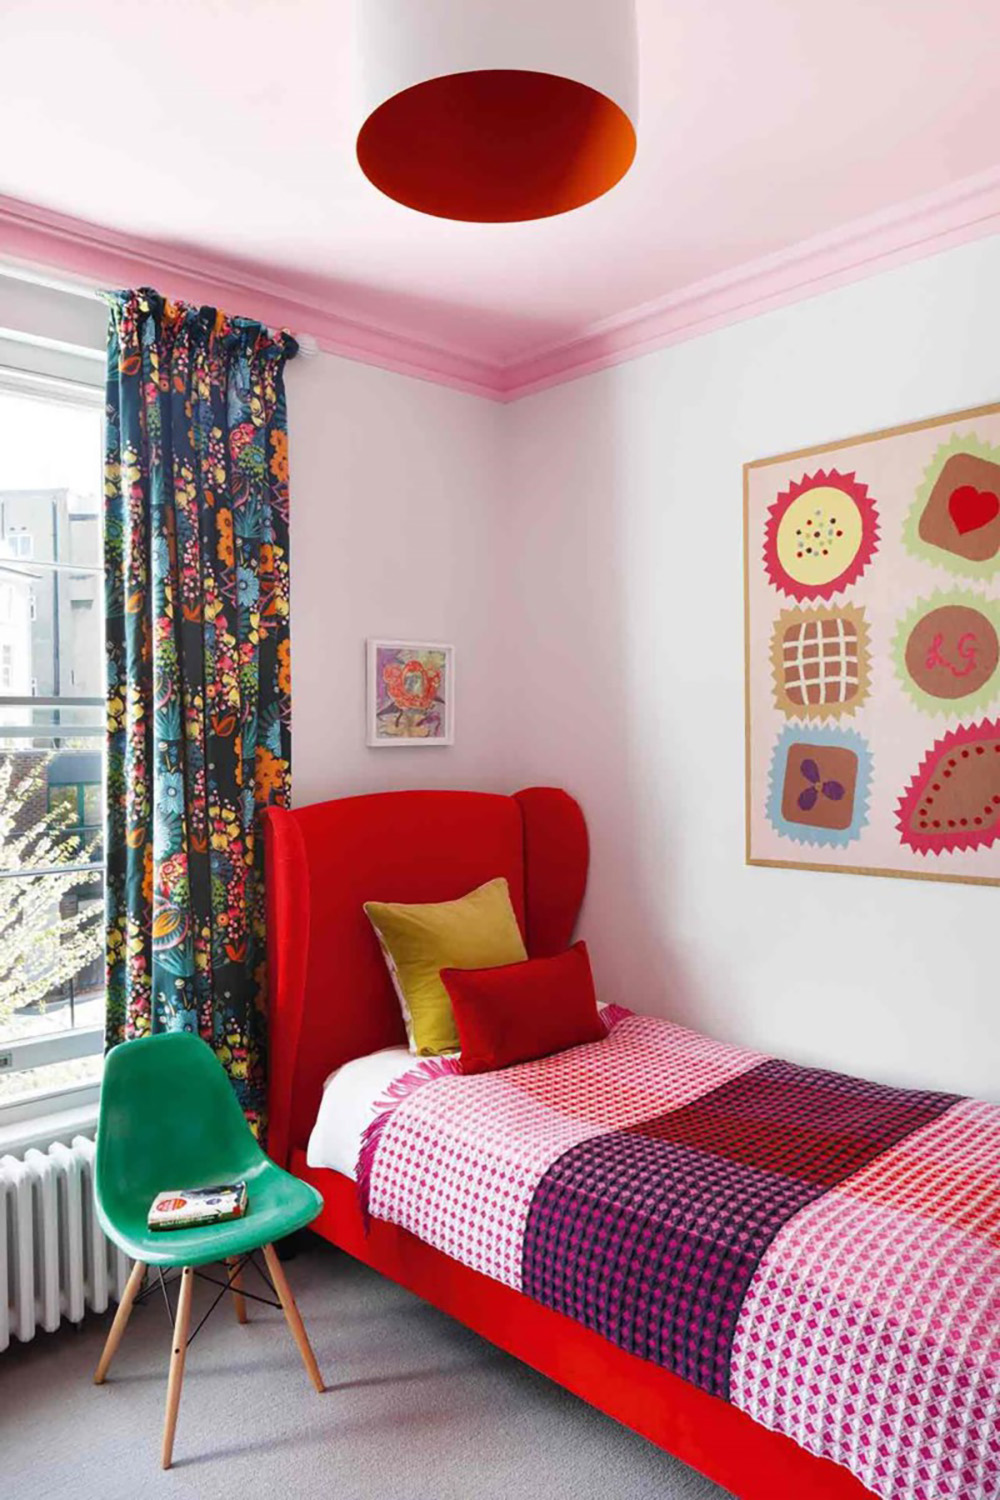 So Fresh & So Chic // Pink and Red Interiors // Adorable kids room with pink ceiling, red upholstered bed, and green accent chair.